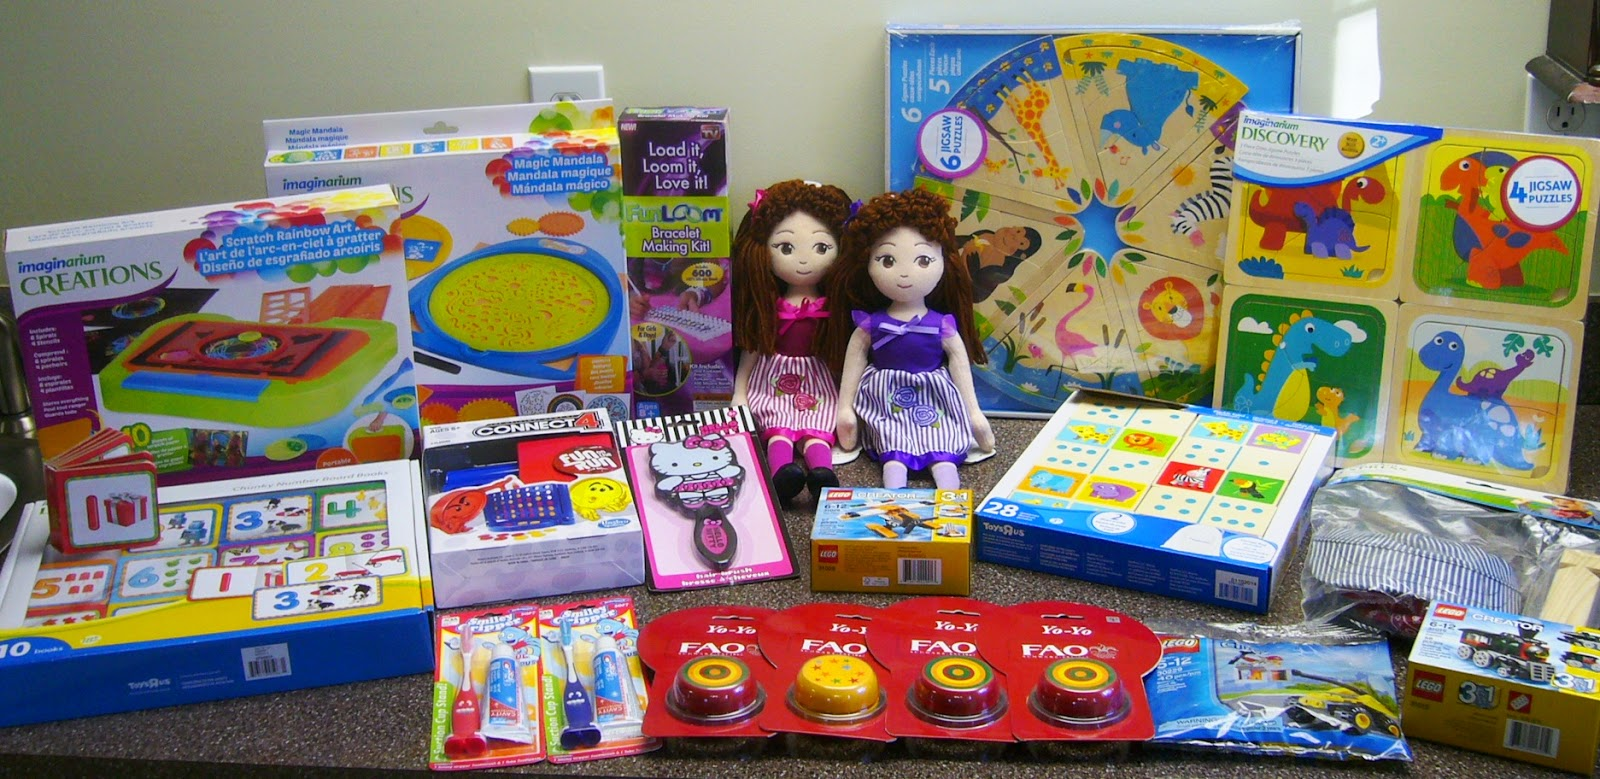 Toys R Us blog giveaway win shopping spree for Operation Christmas Child shoeboxes.